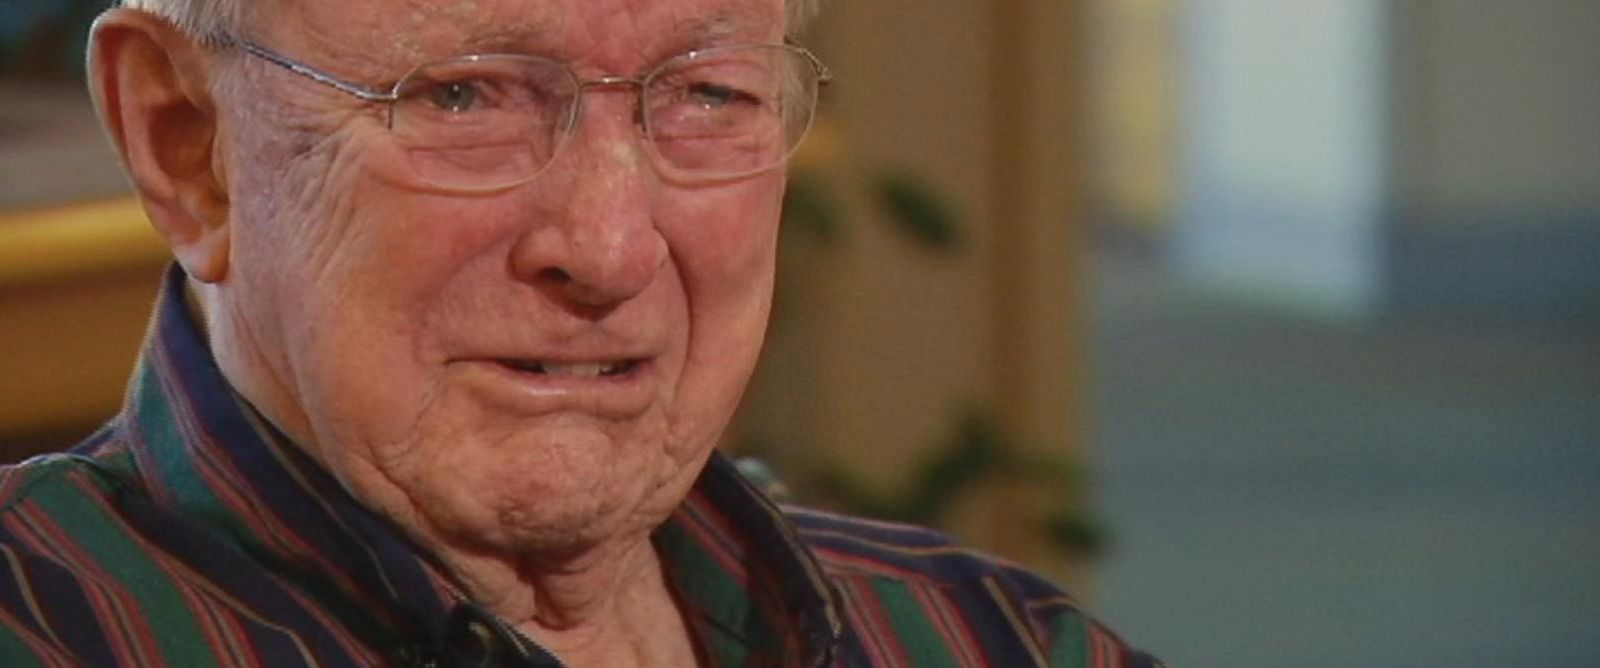 PHOTO: World War II veteran Bill Moore was in tears after receiving a long-lost love letter he wrote to his future-wife when he was at war in Europe 70 years ago.